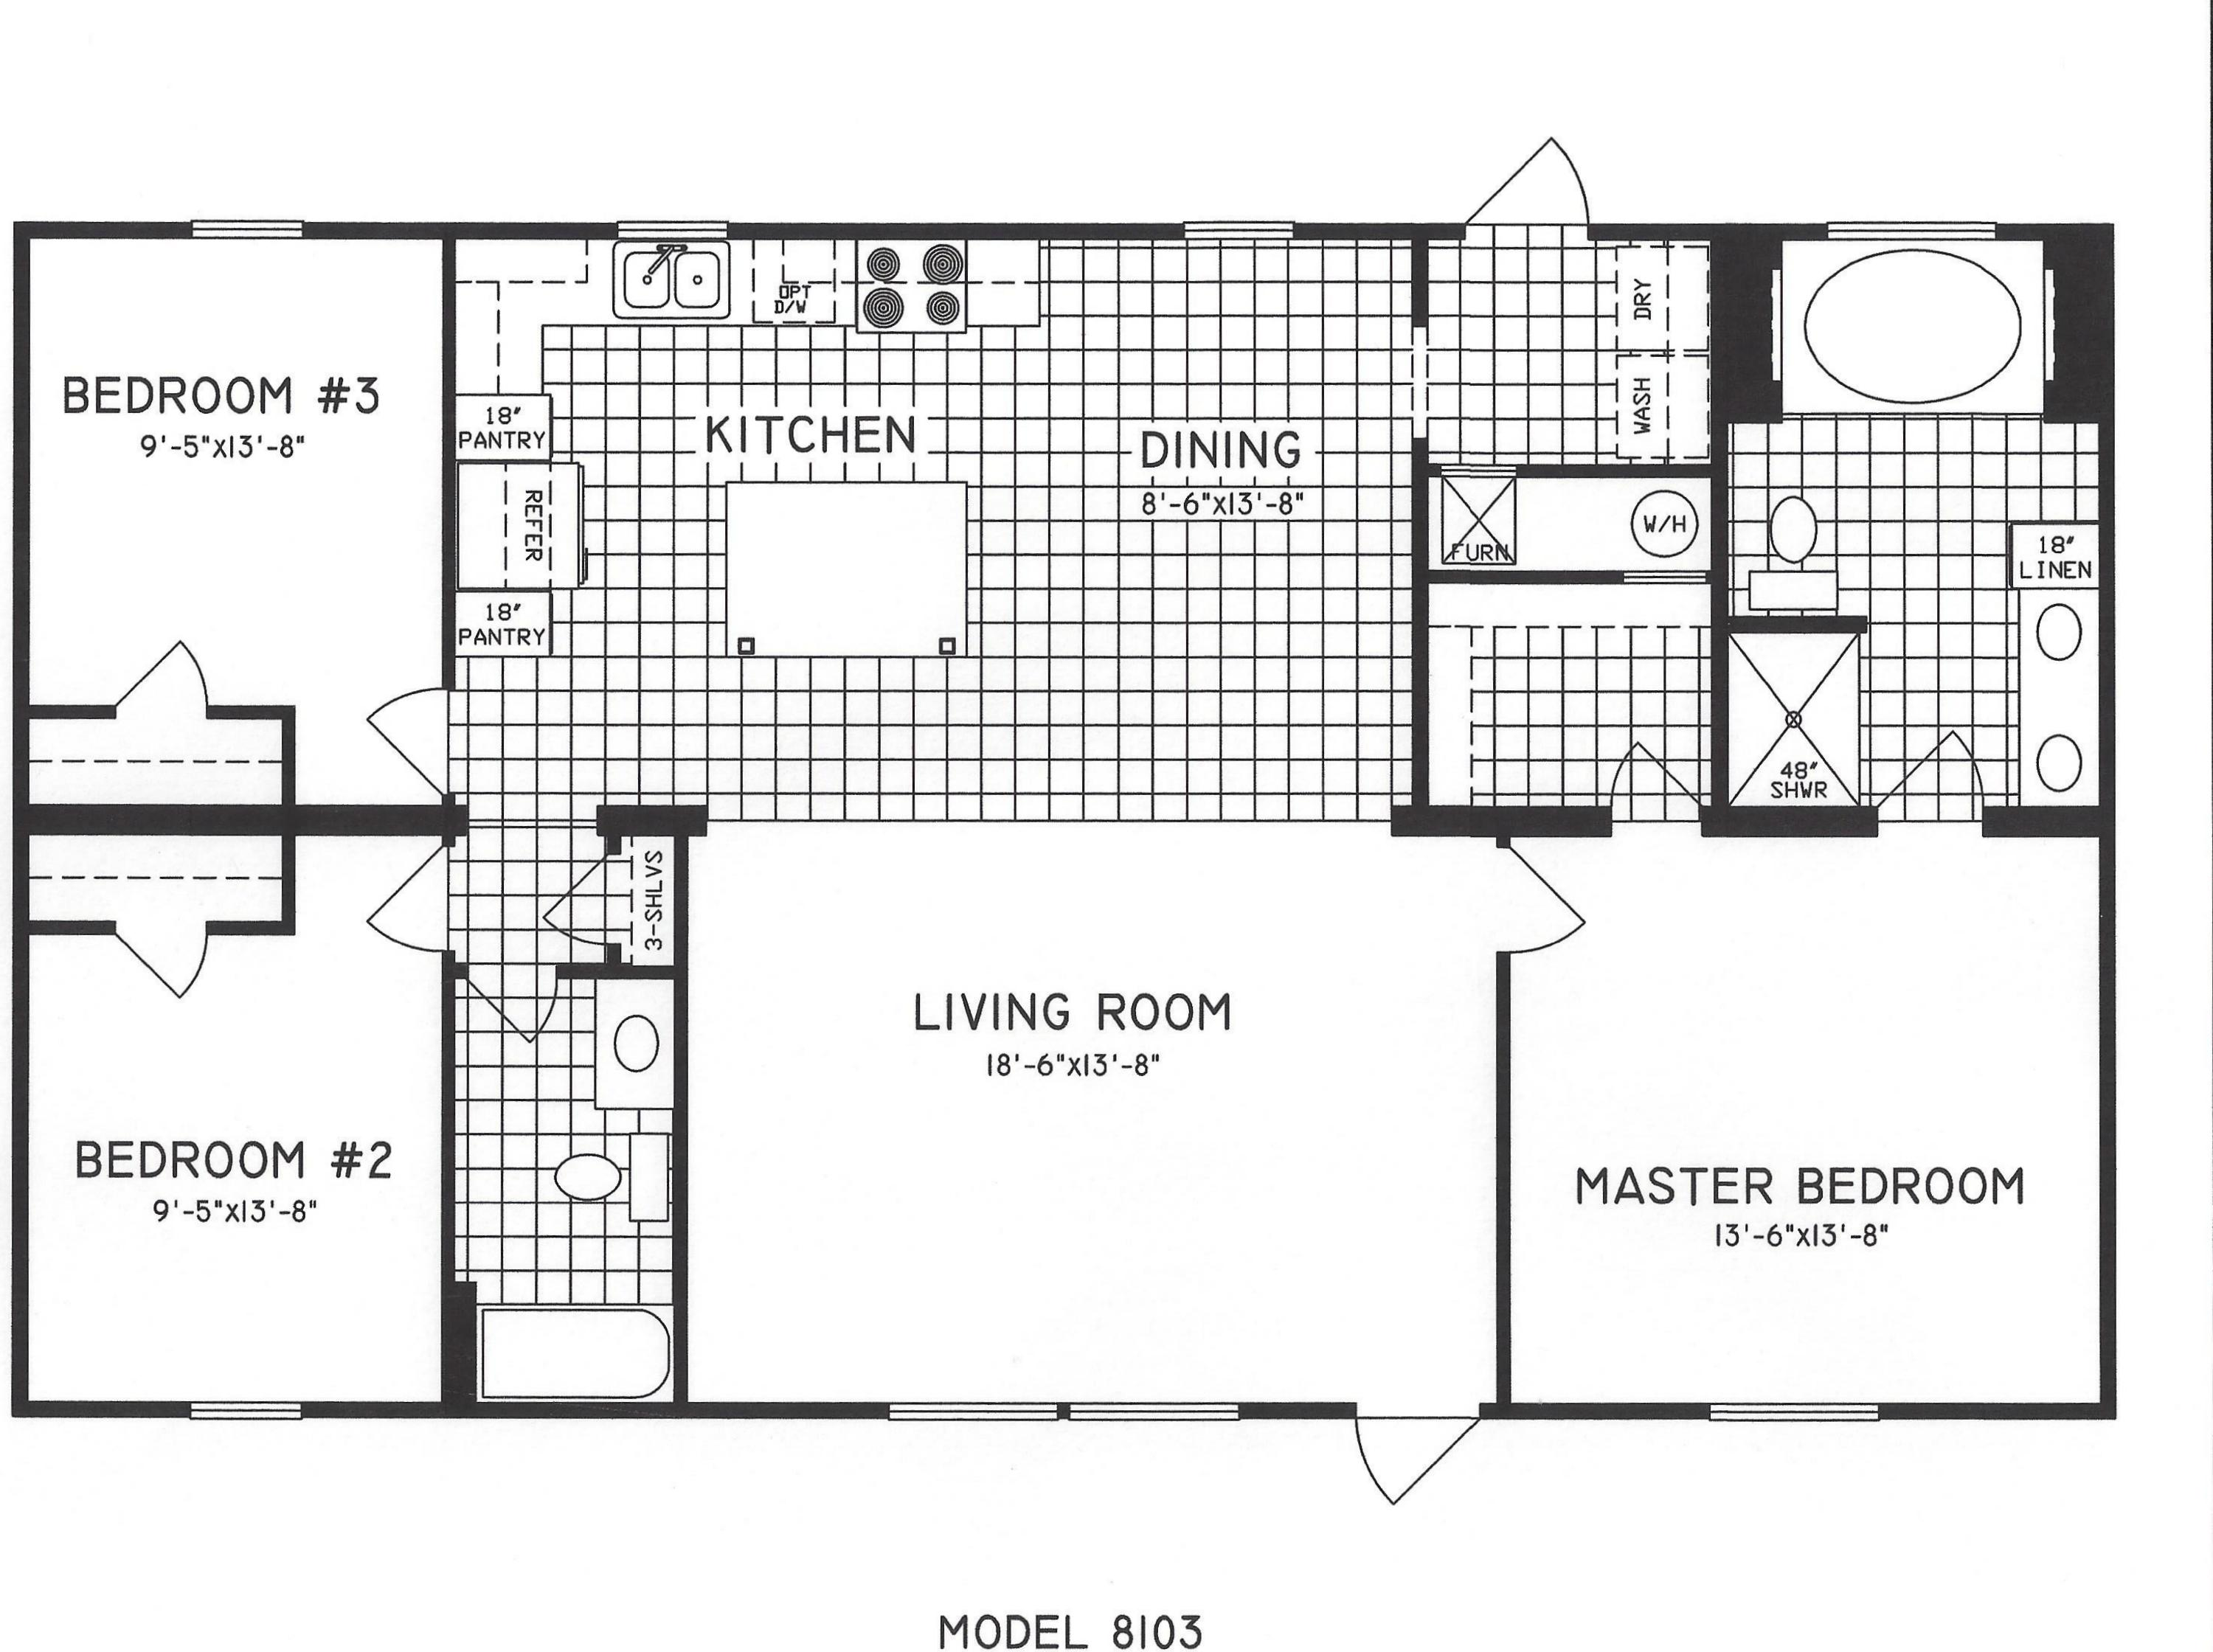 bedroom floor plan c  hawks homes  manufactured, Bedroom designs